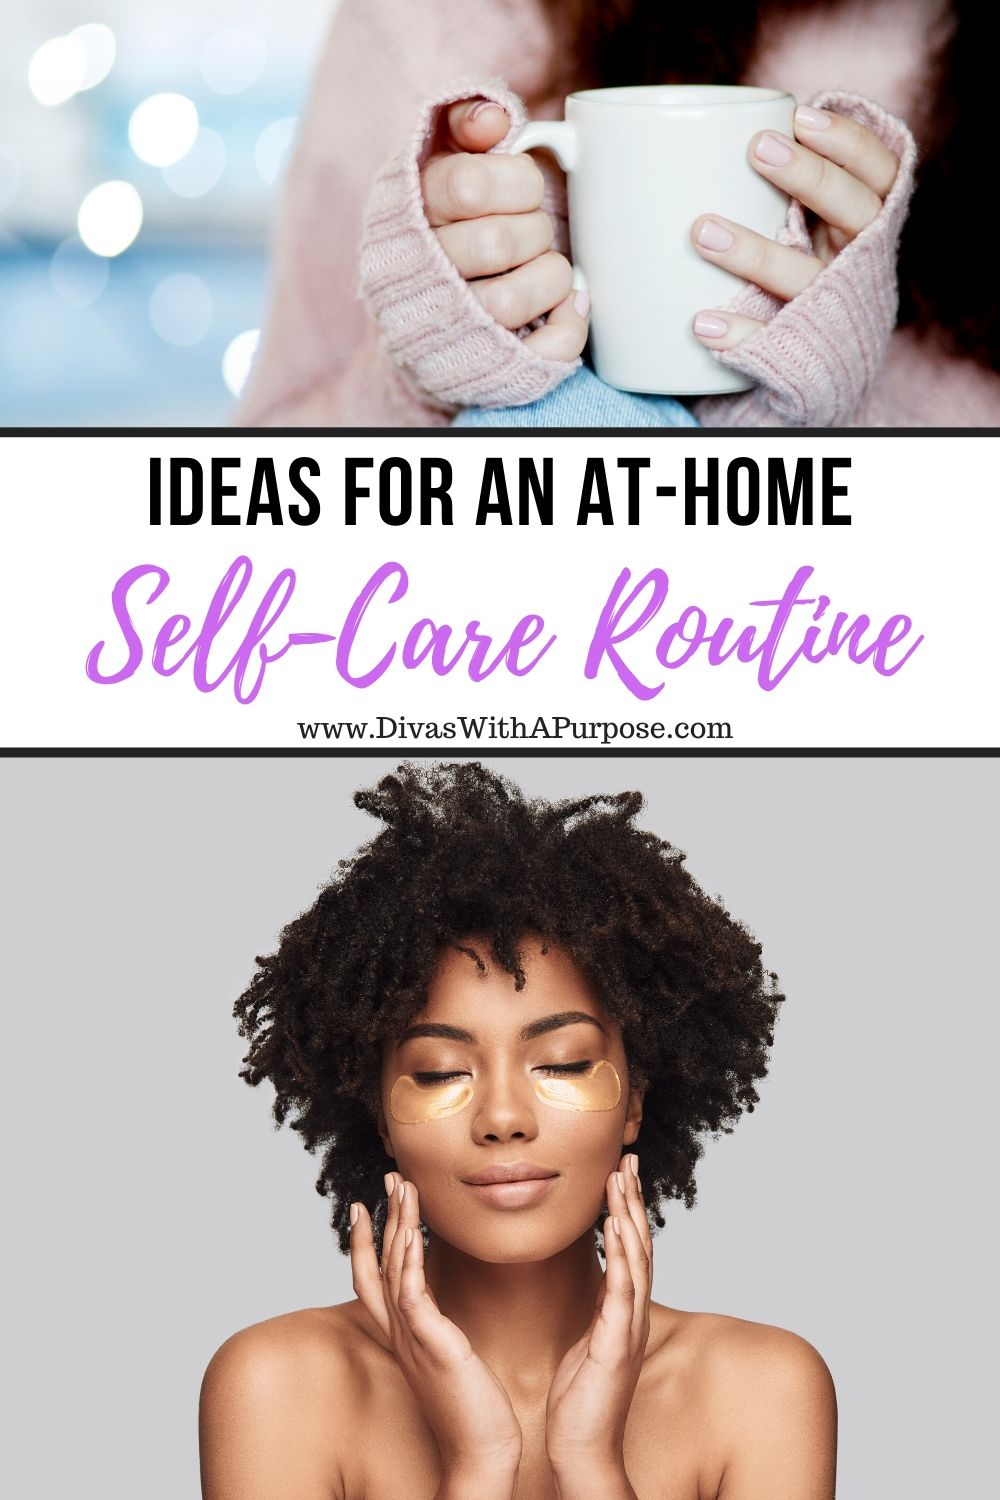 What's included in your self-care routine these days? Here are five simple ways to ensure you're making time for yourself and well-being.